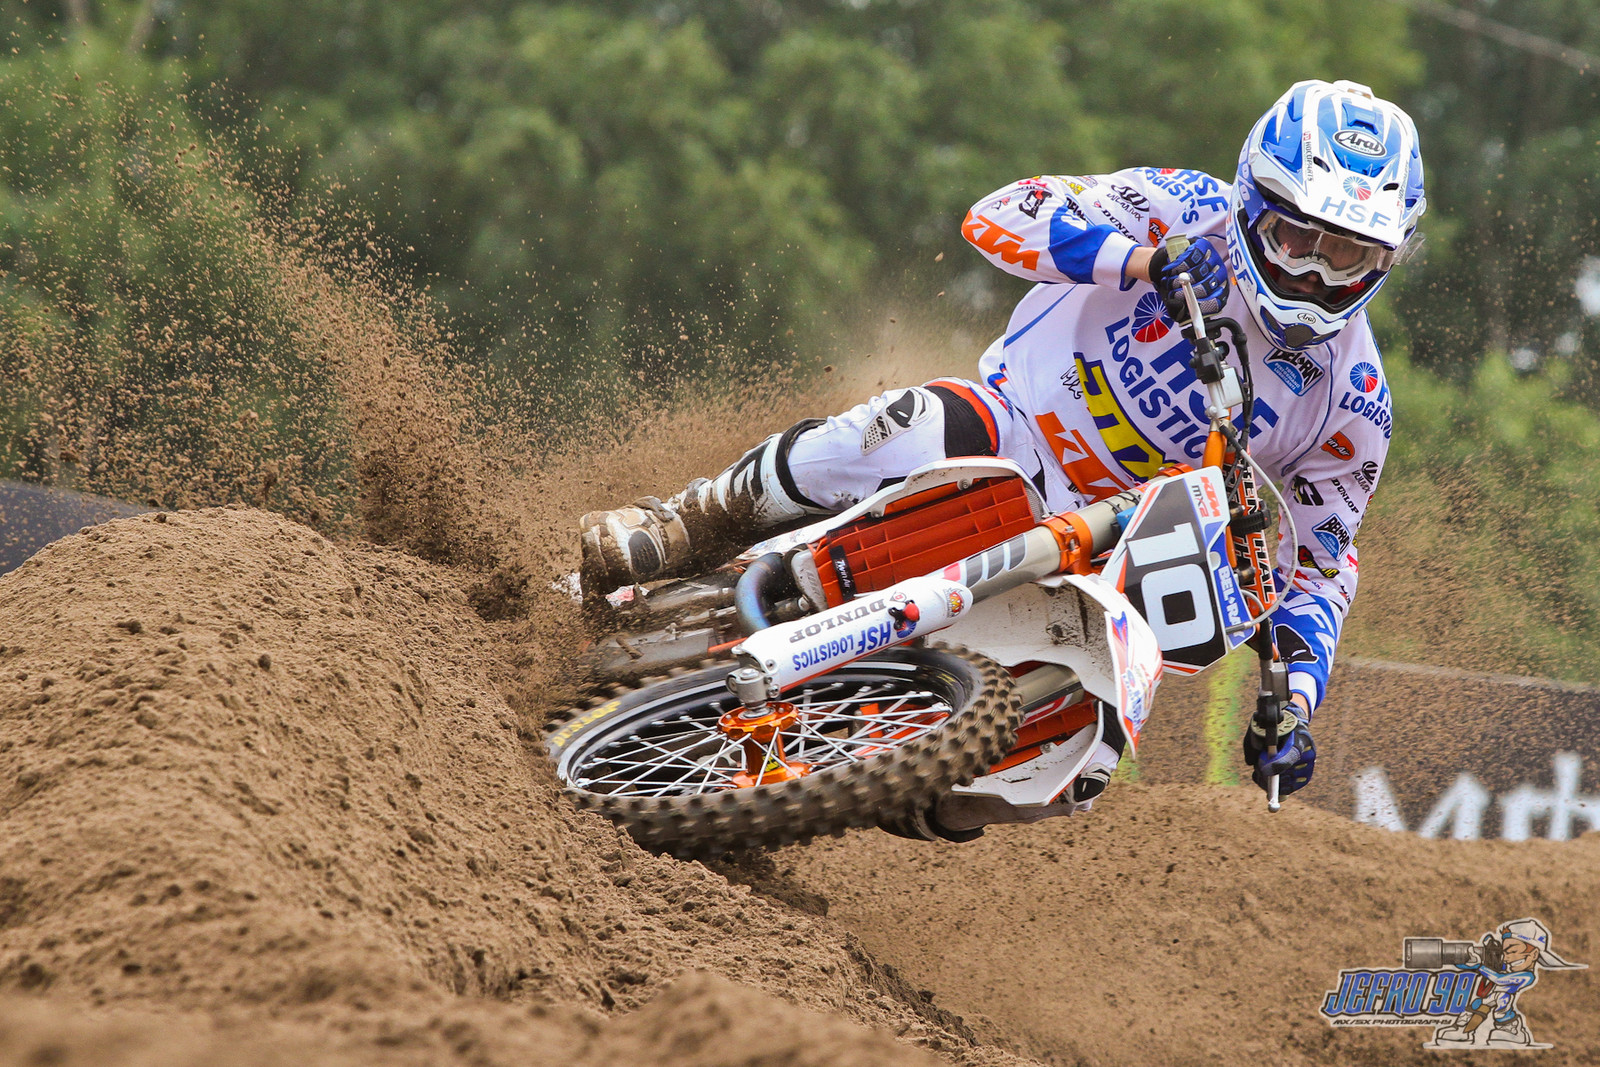 Calvin Vlaanderen - Photo Gallery: MXGP of Limburg - Motocross Pictures - Vital MX